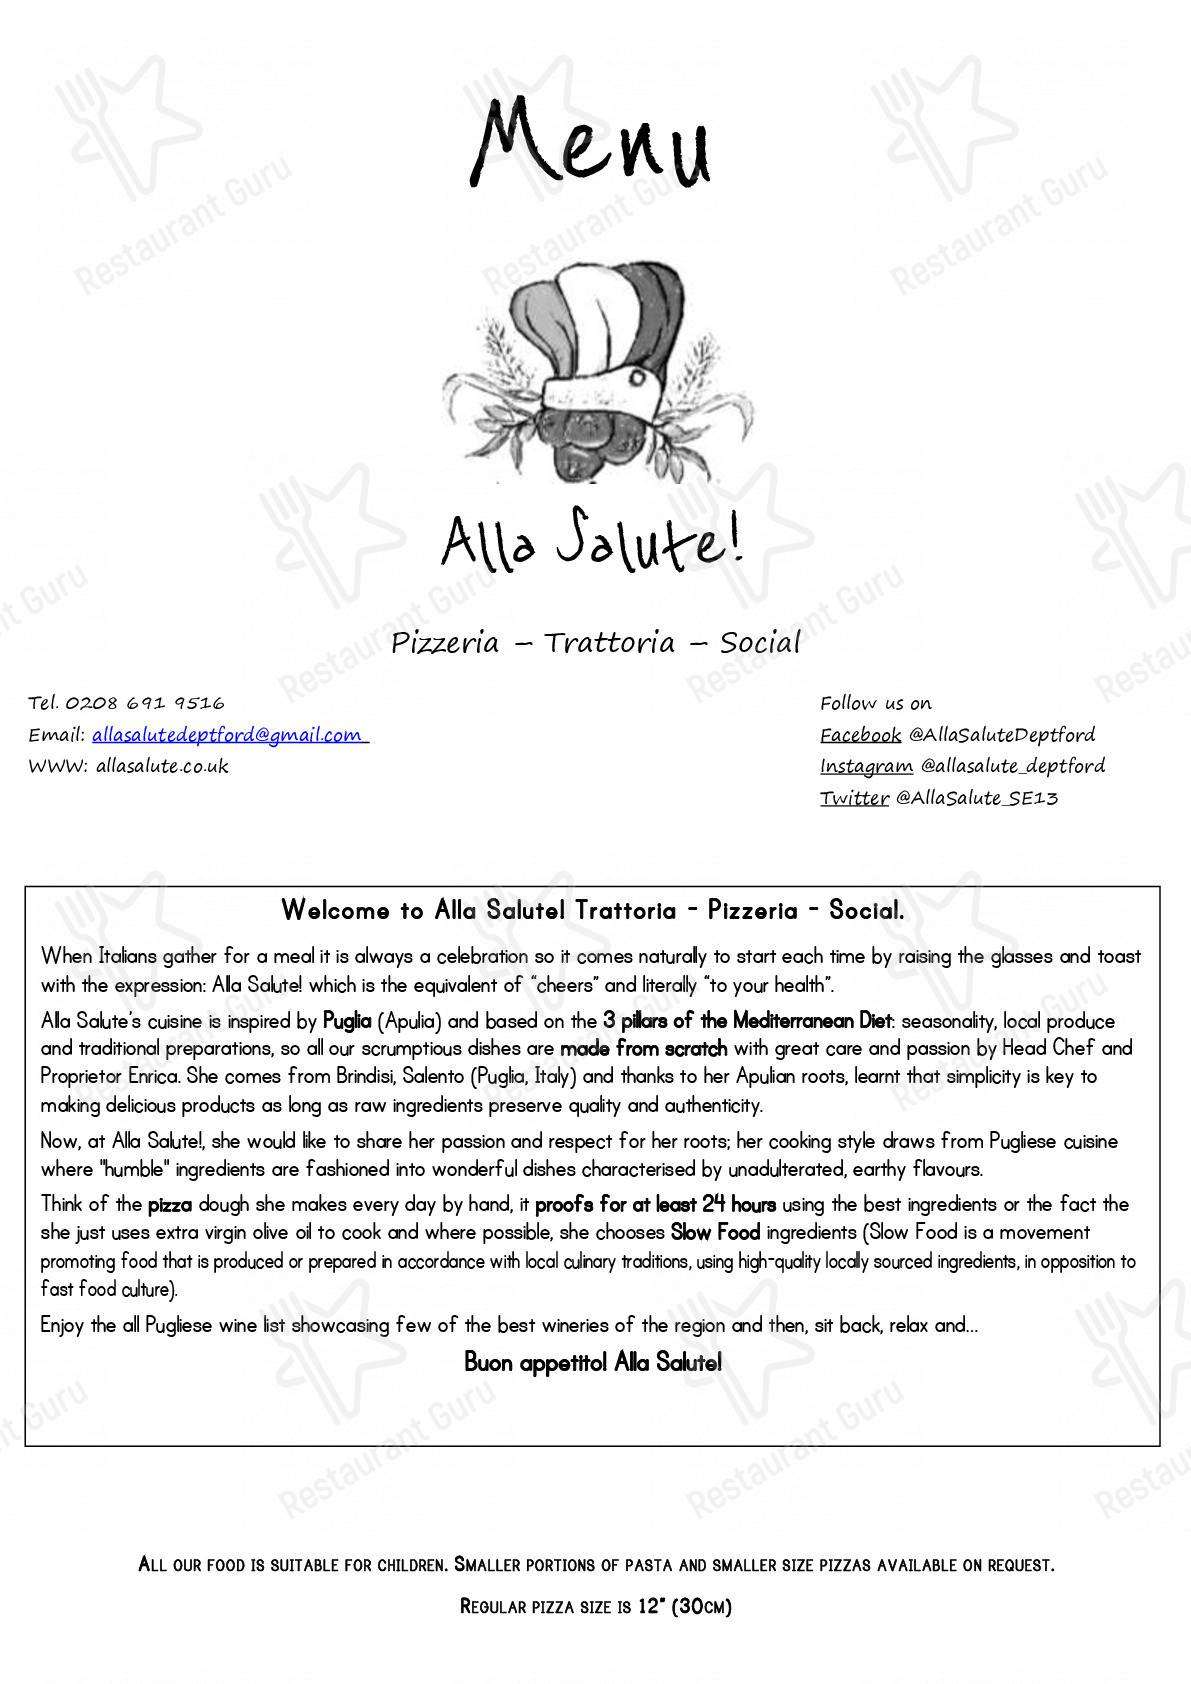 Alla Salute menu - dishes and beverages